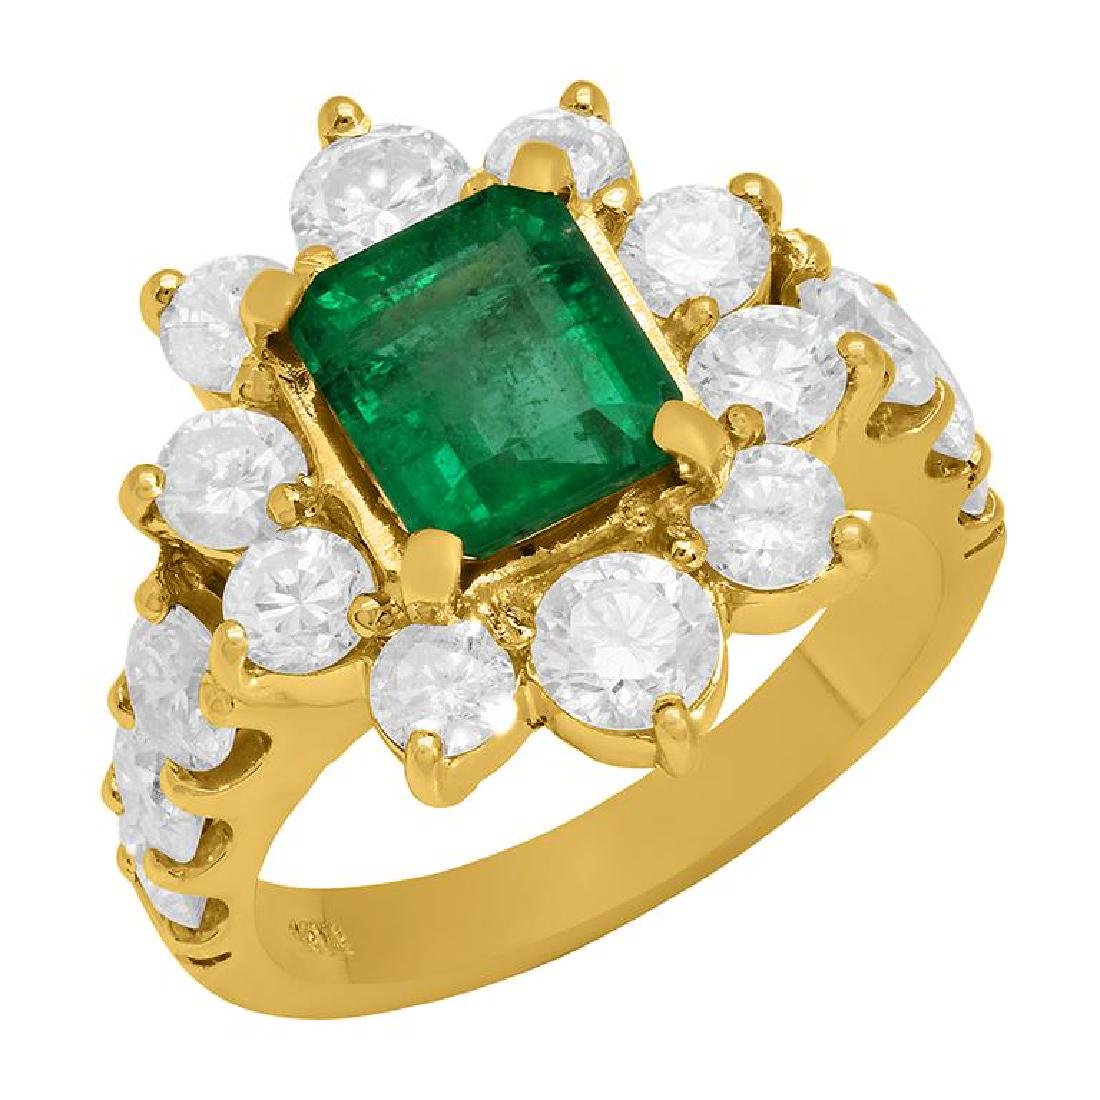 14k Yellow Gold 1.70ct Emerald 2.73ct Diamond Ring